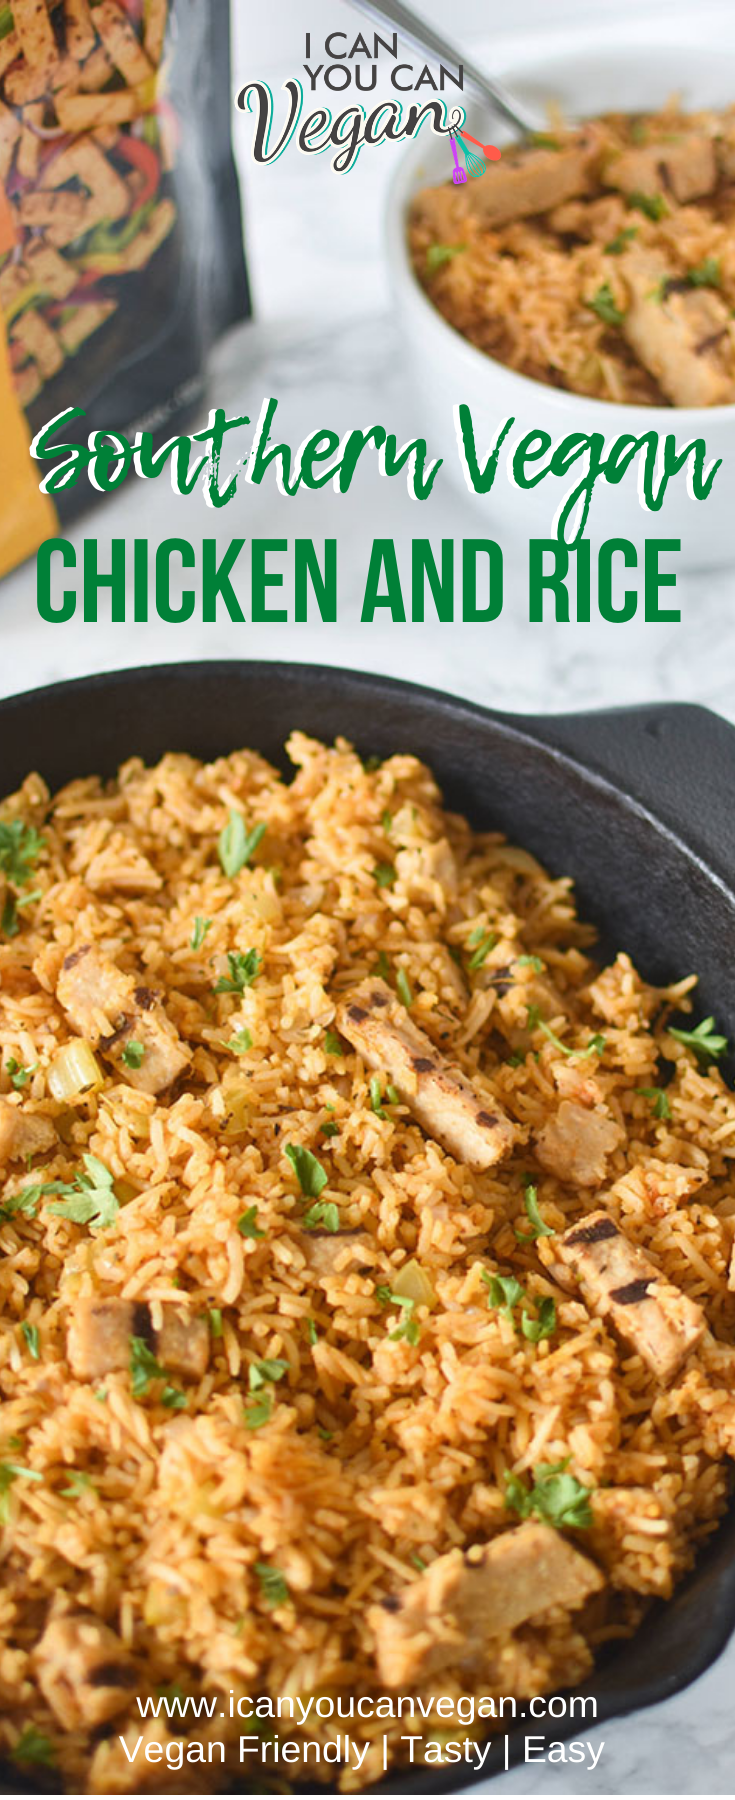 Vegan Southern Chicken and Rice Pinterest